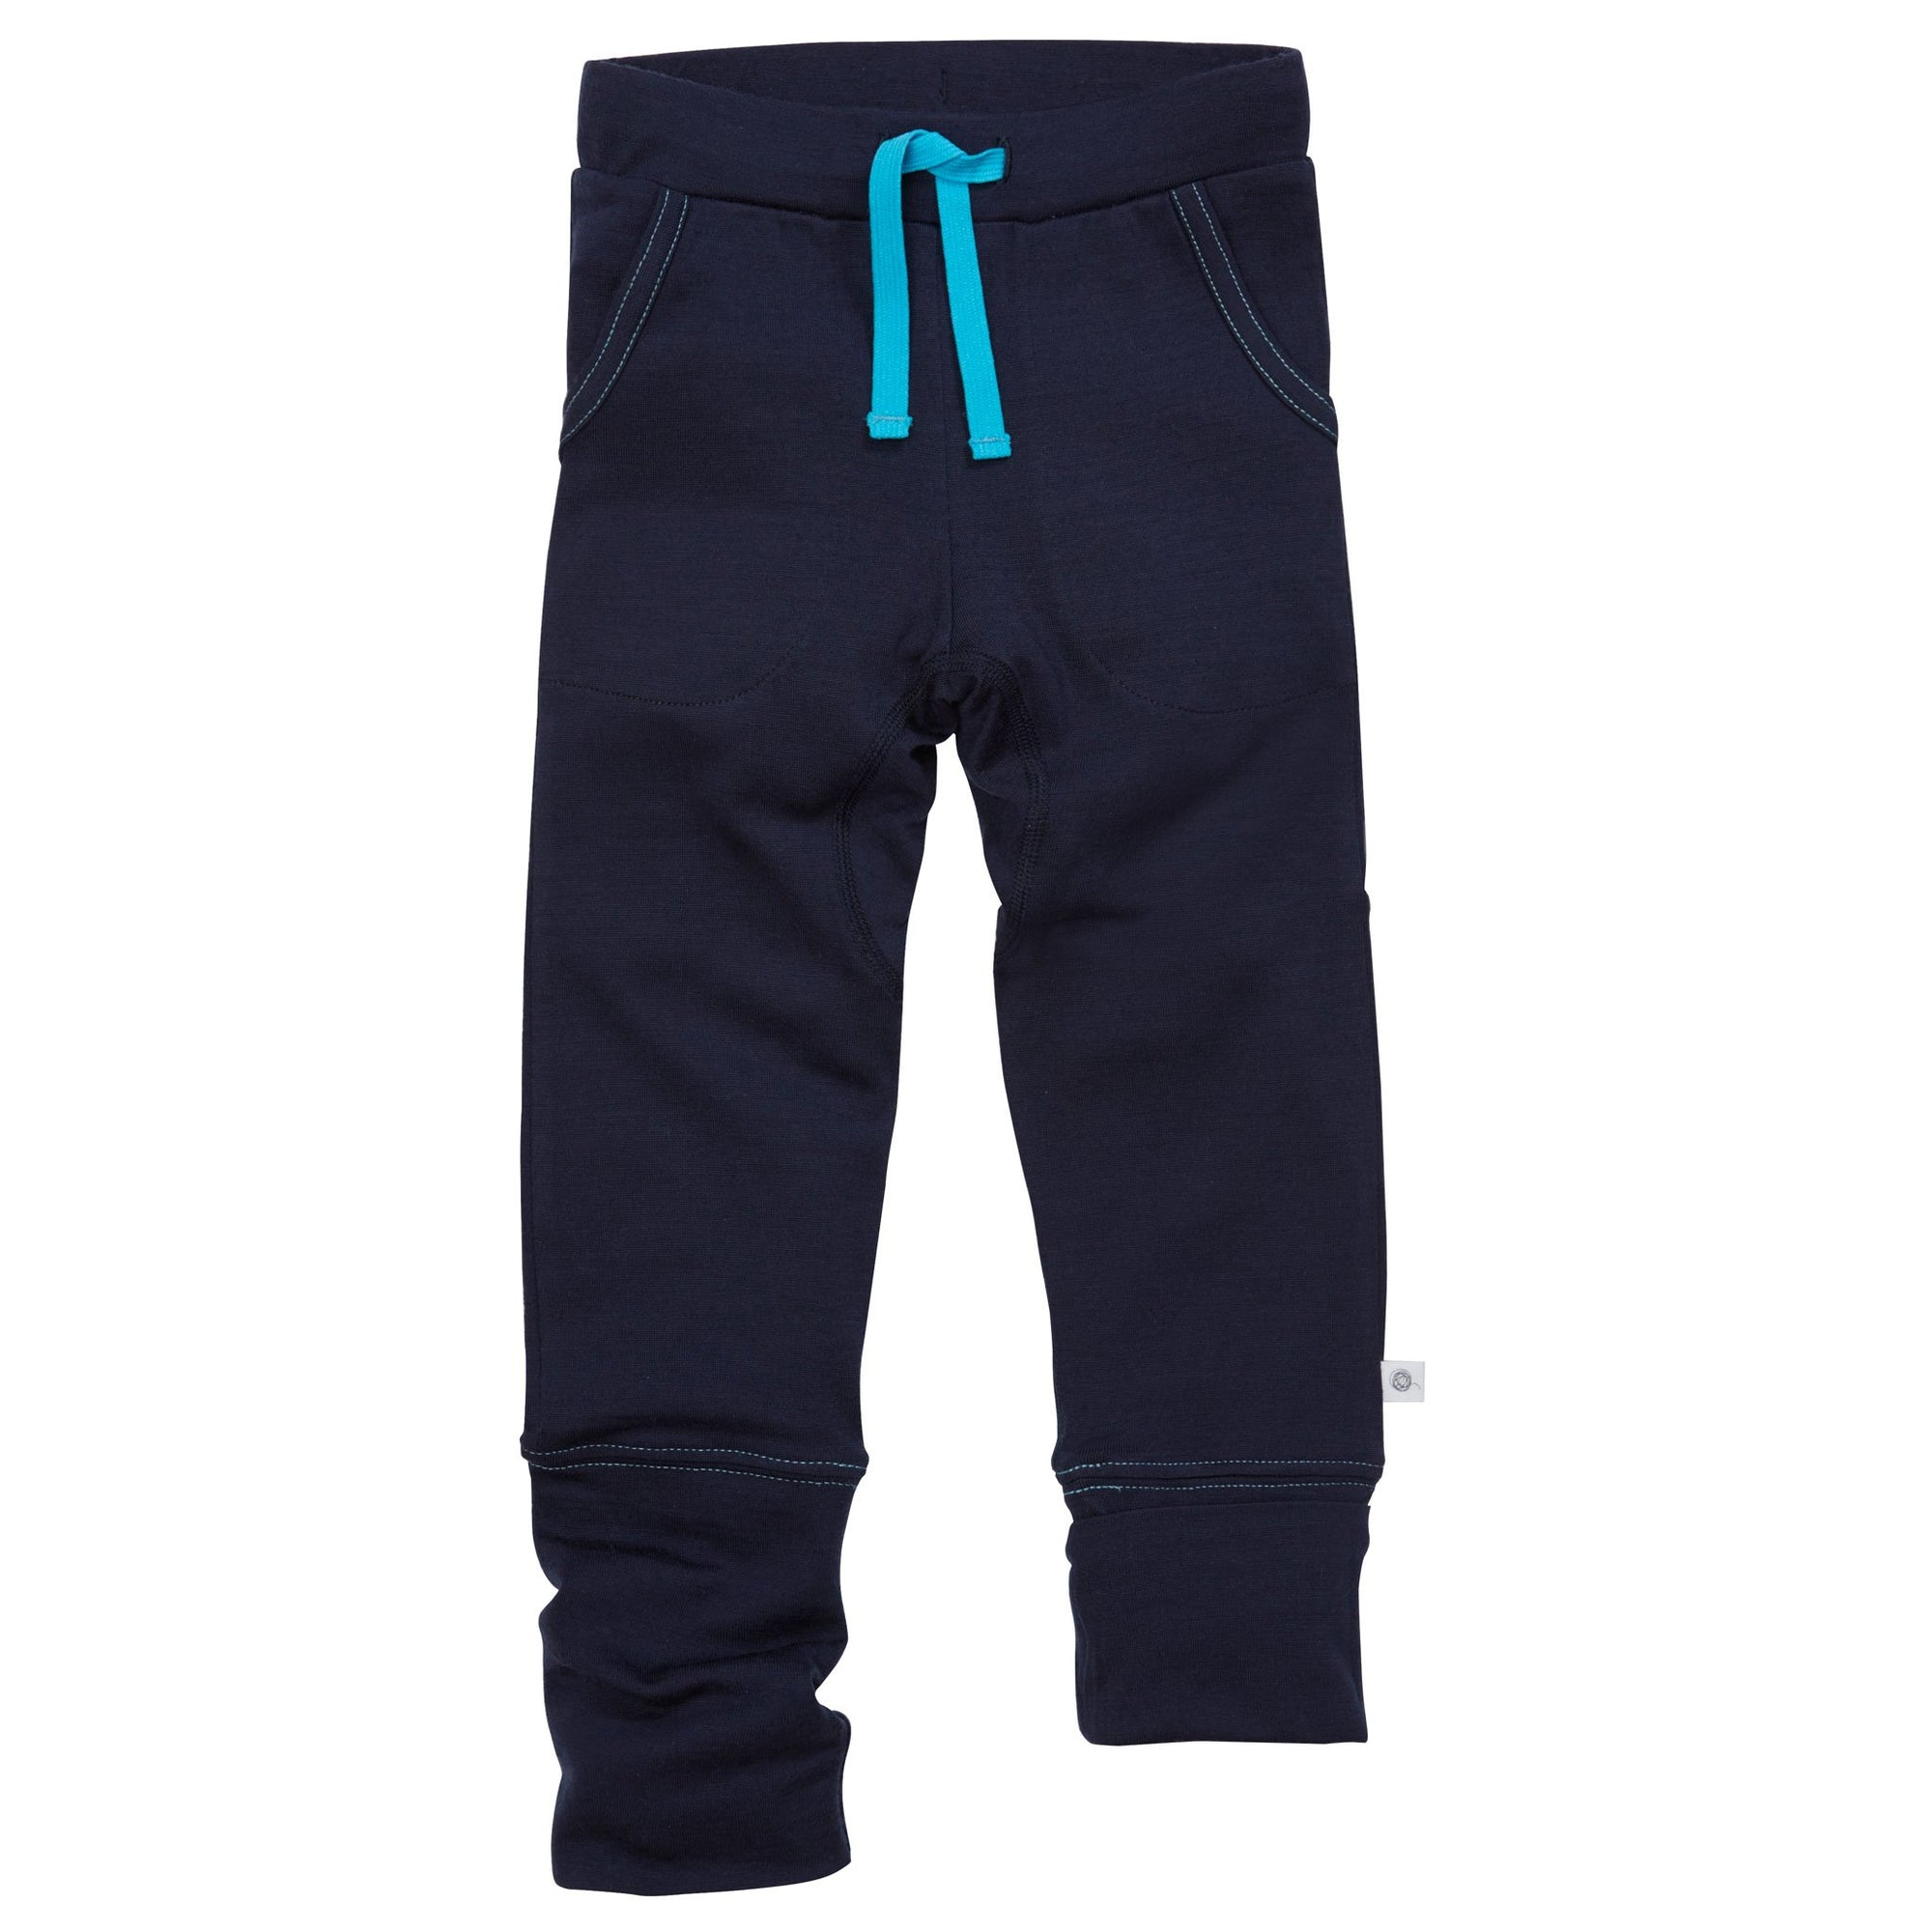 Pantaloni Smalls lână merinos extra fina - 24-hours French Navy-Smalls-HipHip.ro